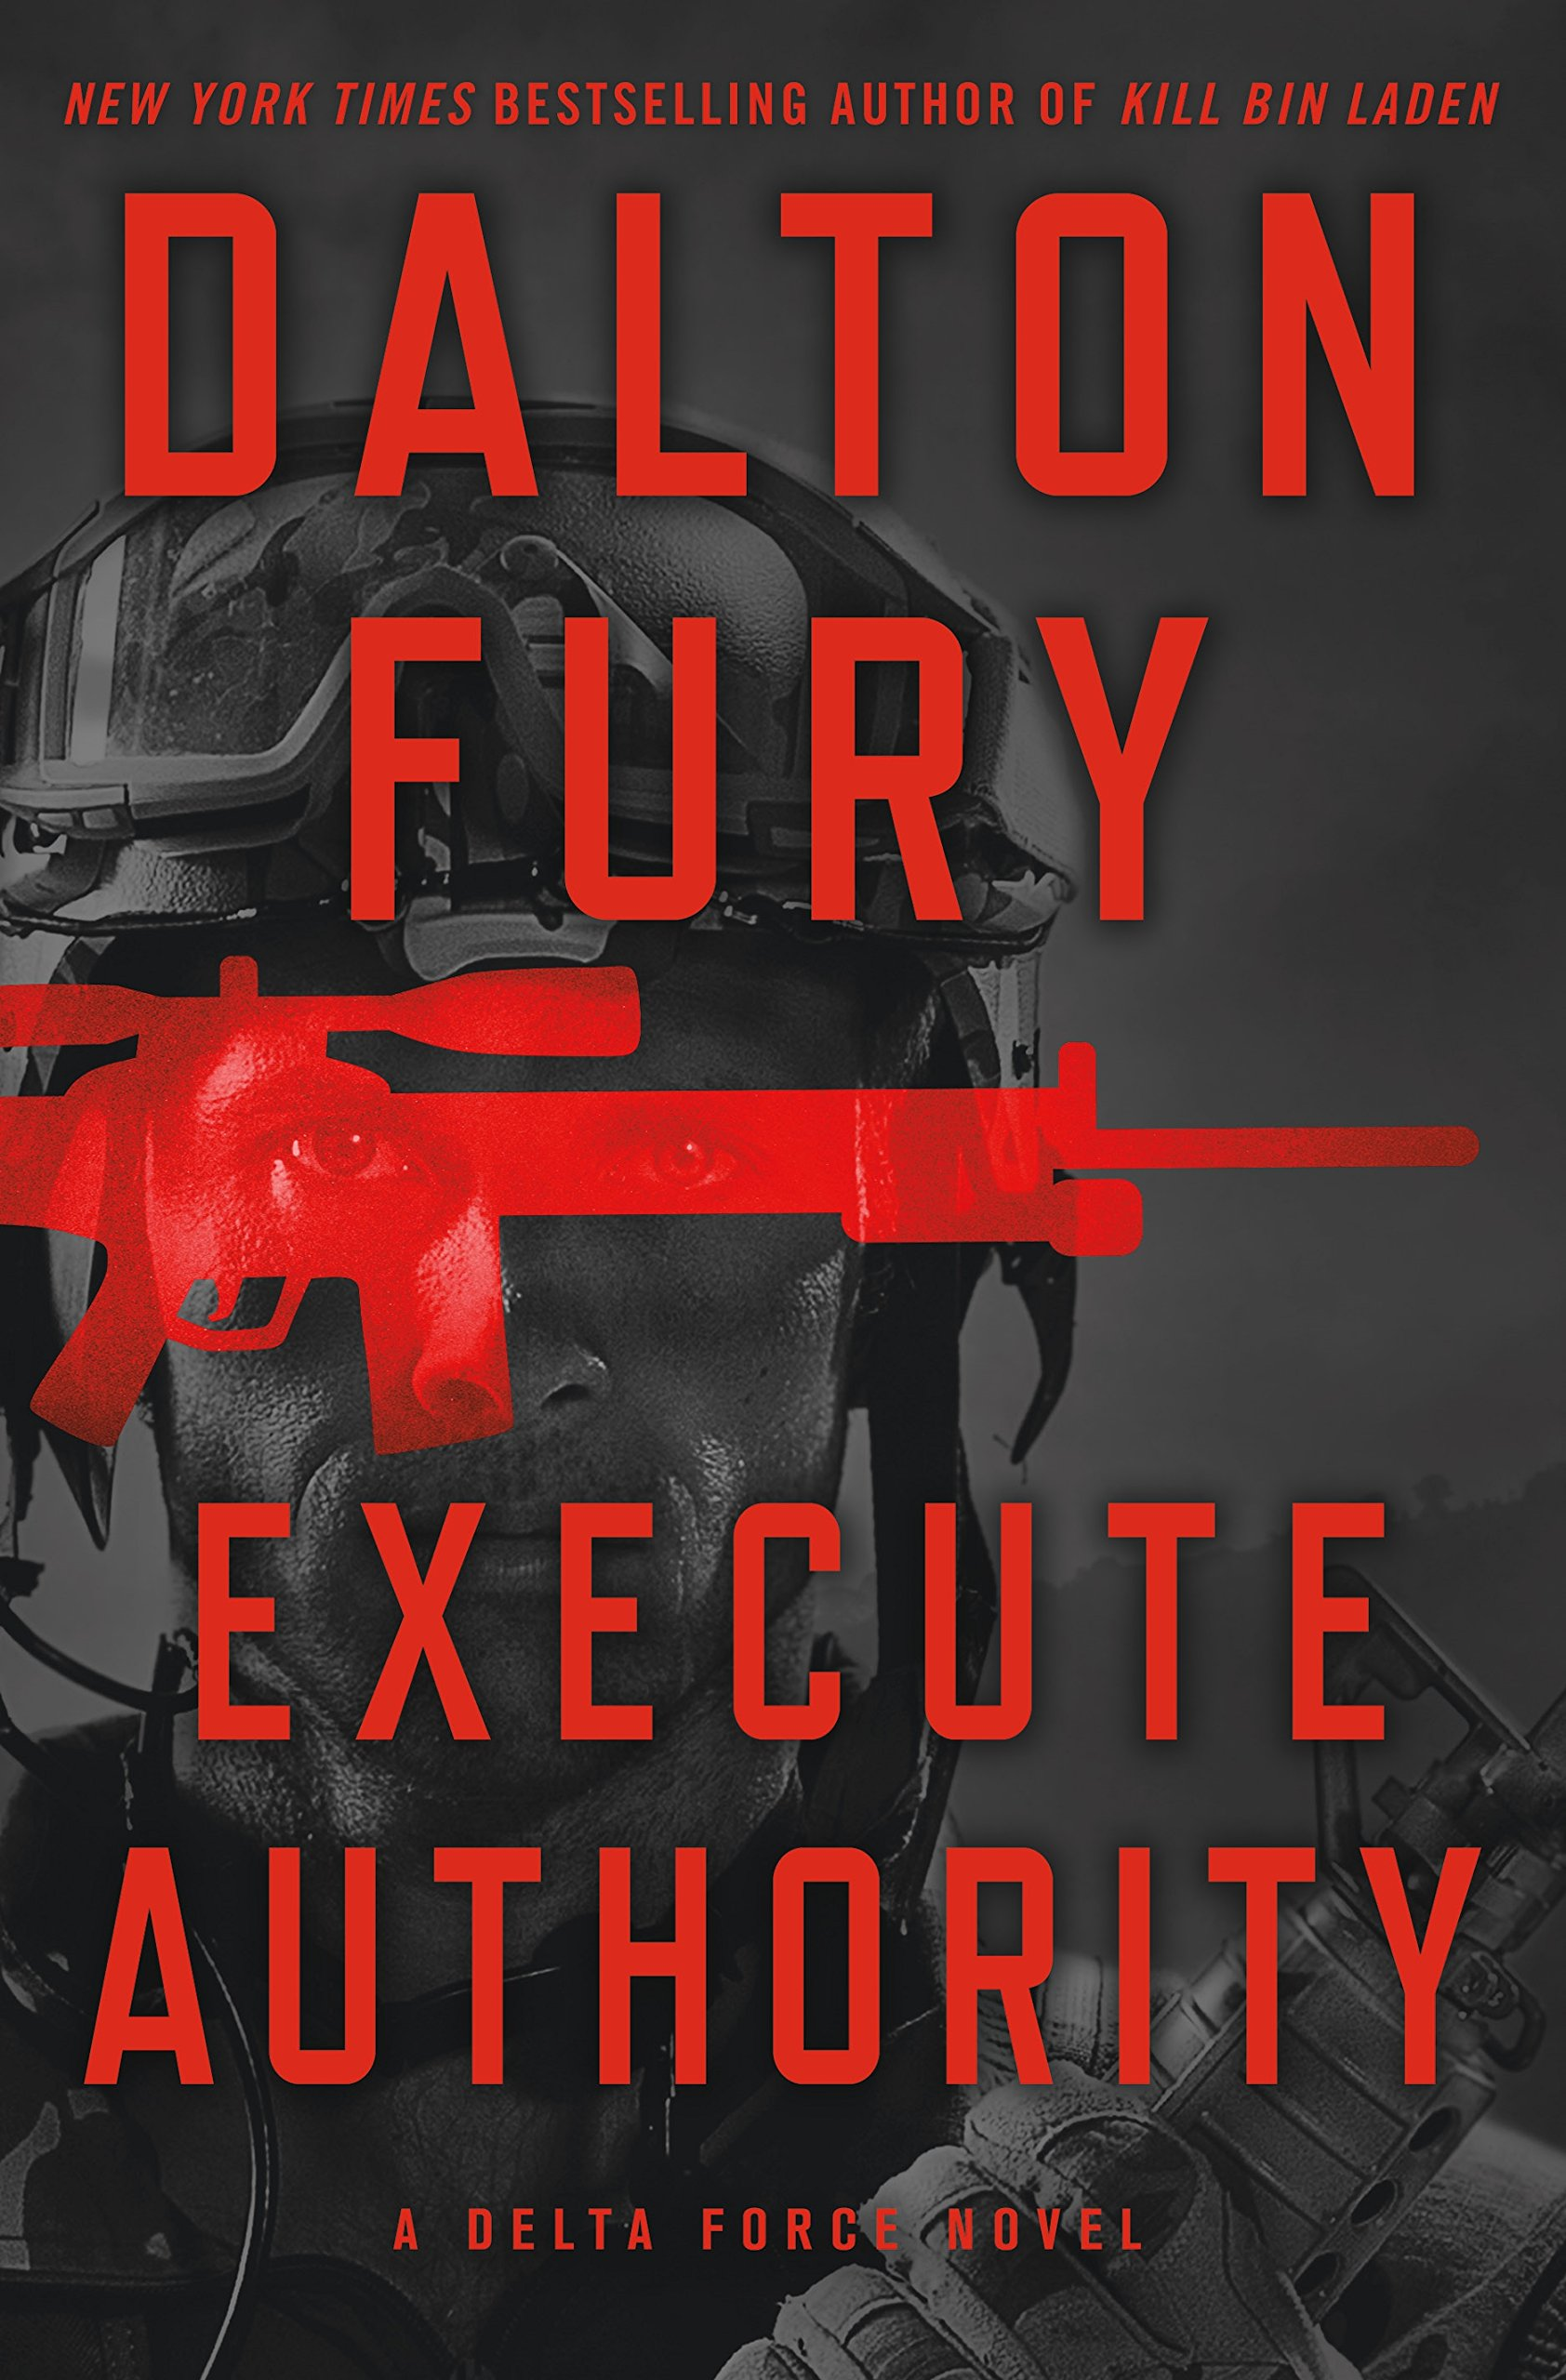 Amazon execute authority a delta force novel 9781250120489 amazon execute authority a delta force novel 9781250120489 dalton fury books fandeluxe Image collections